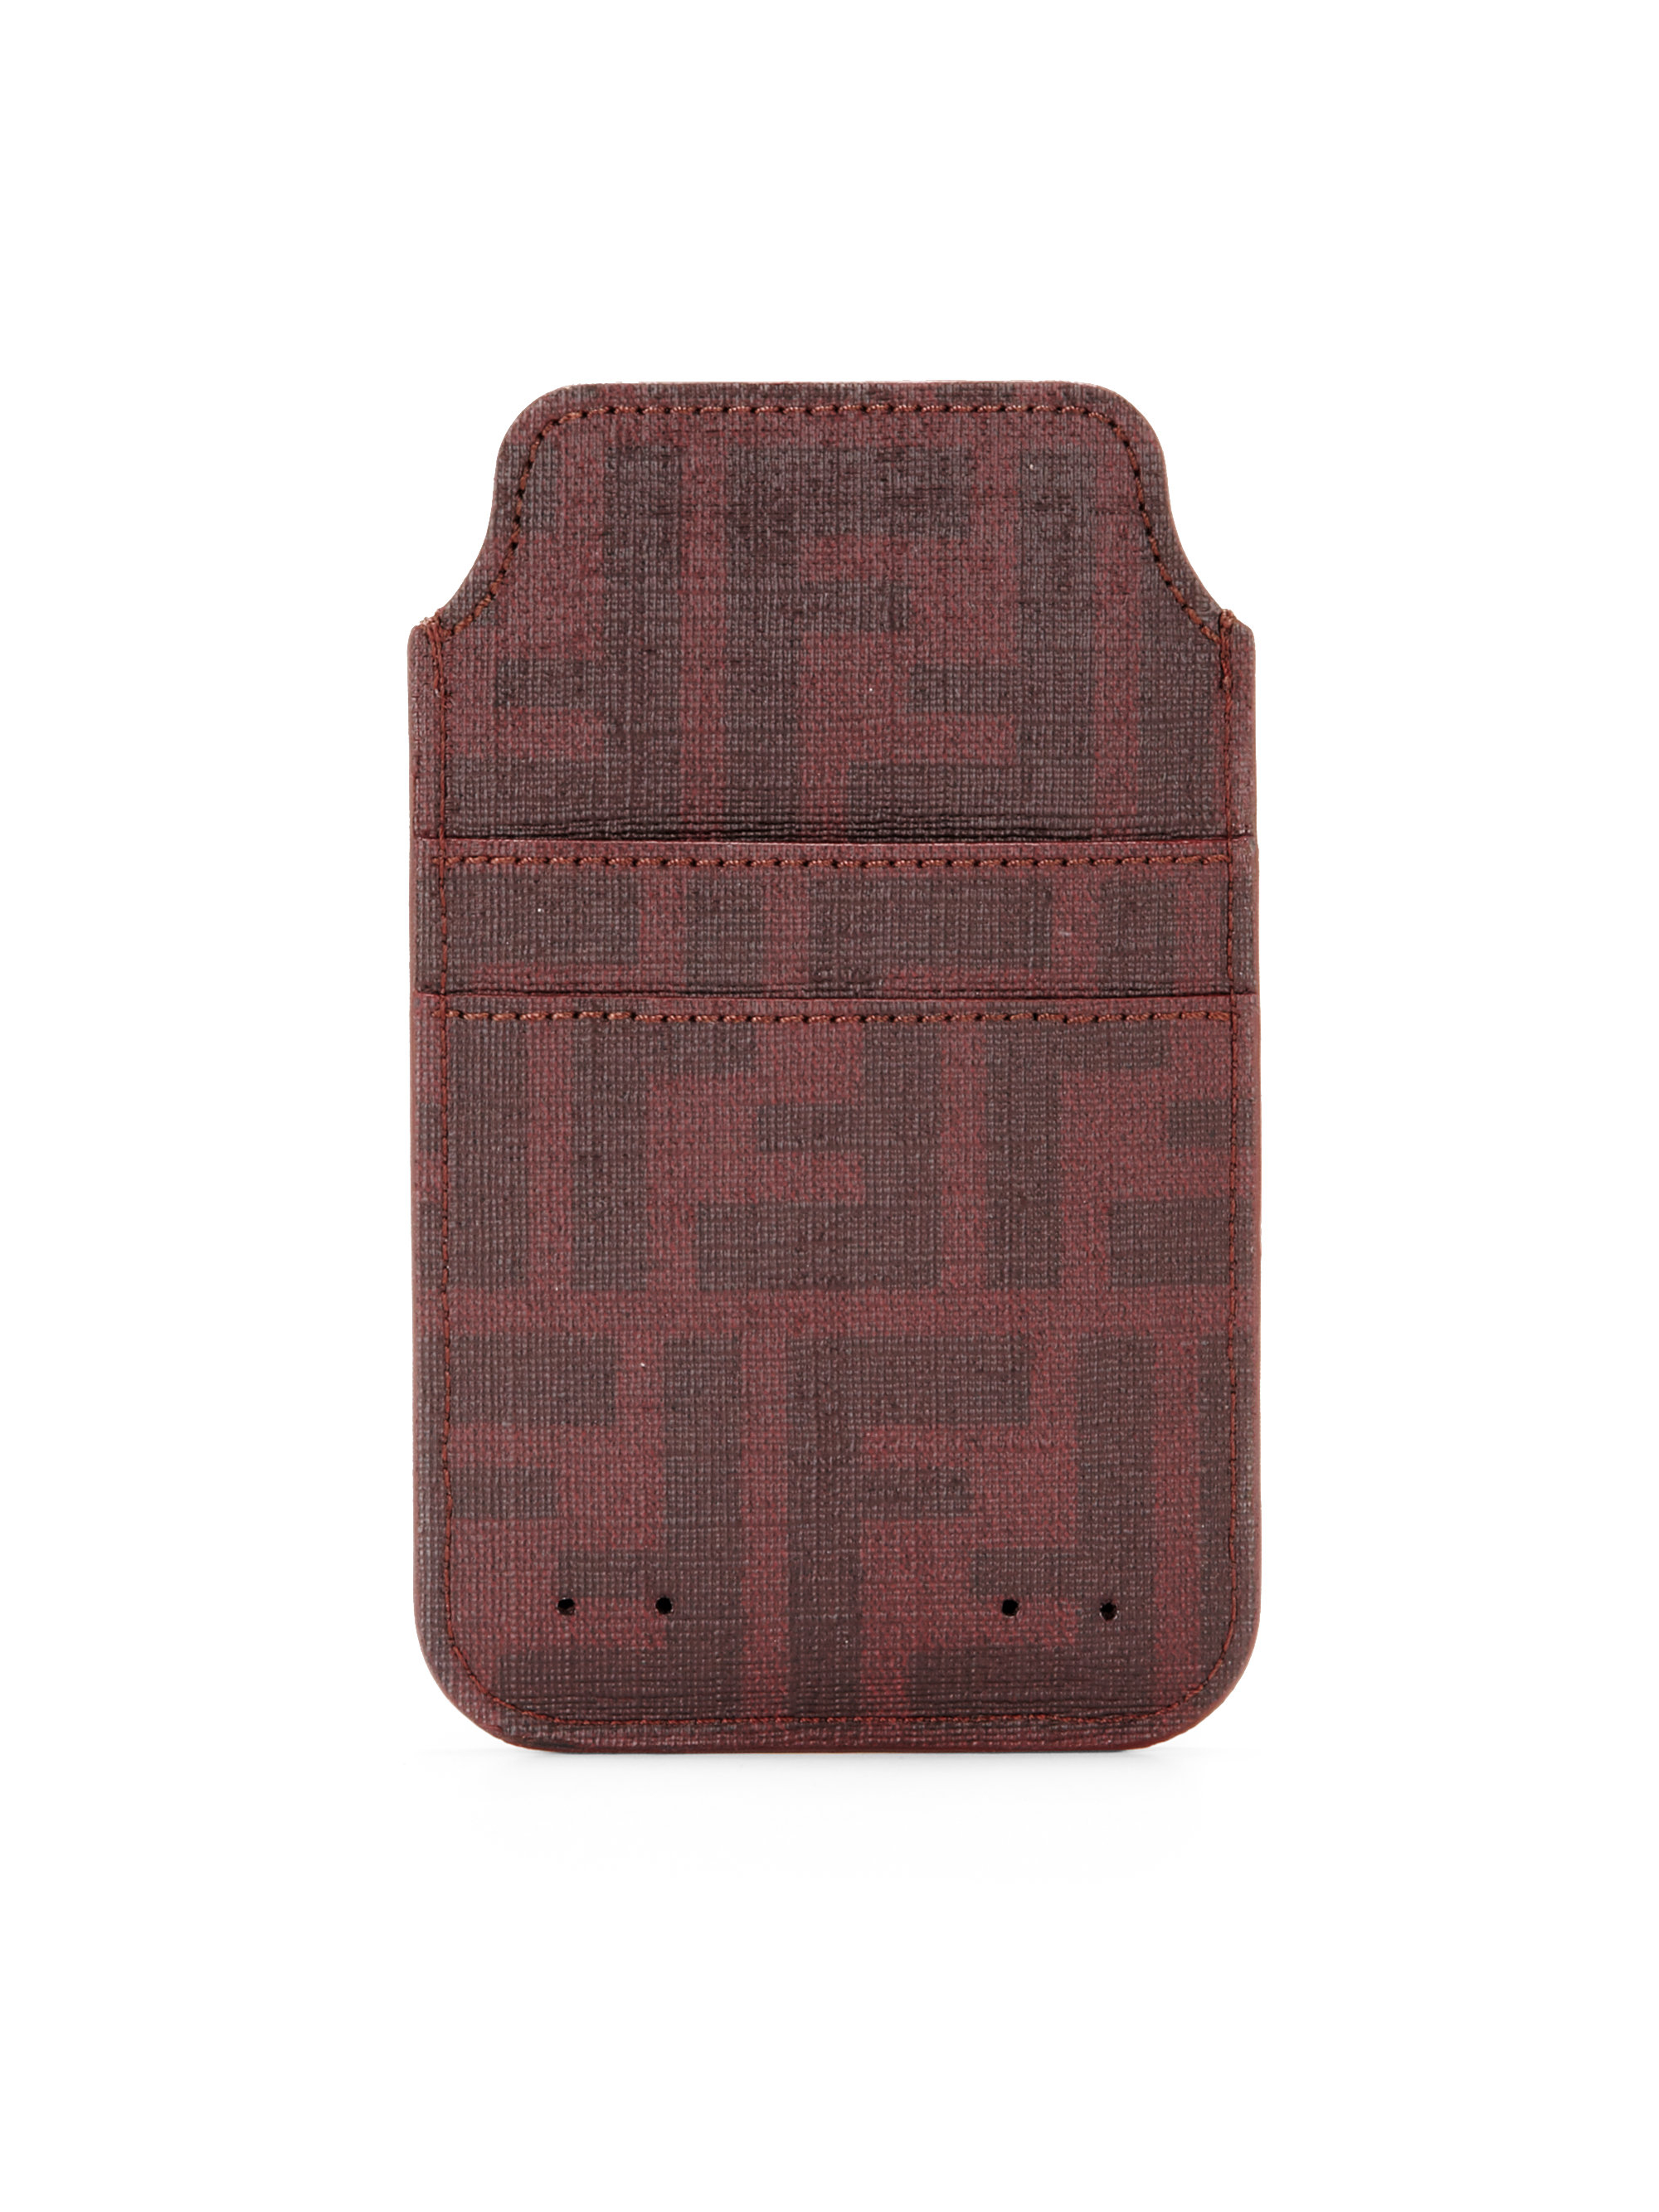 Fendi Phone Case Iphone